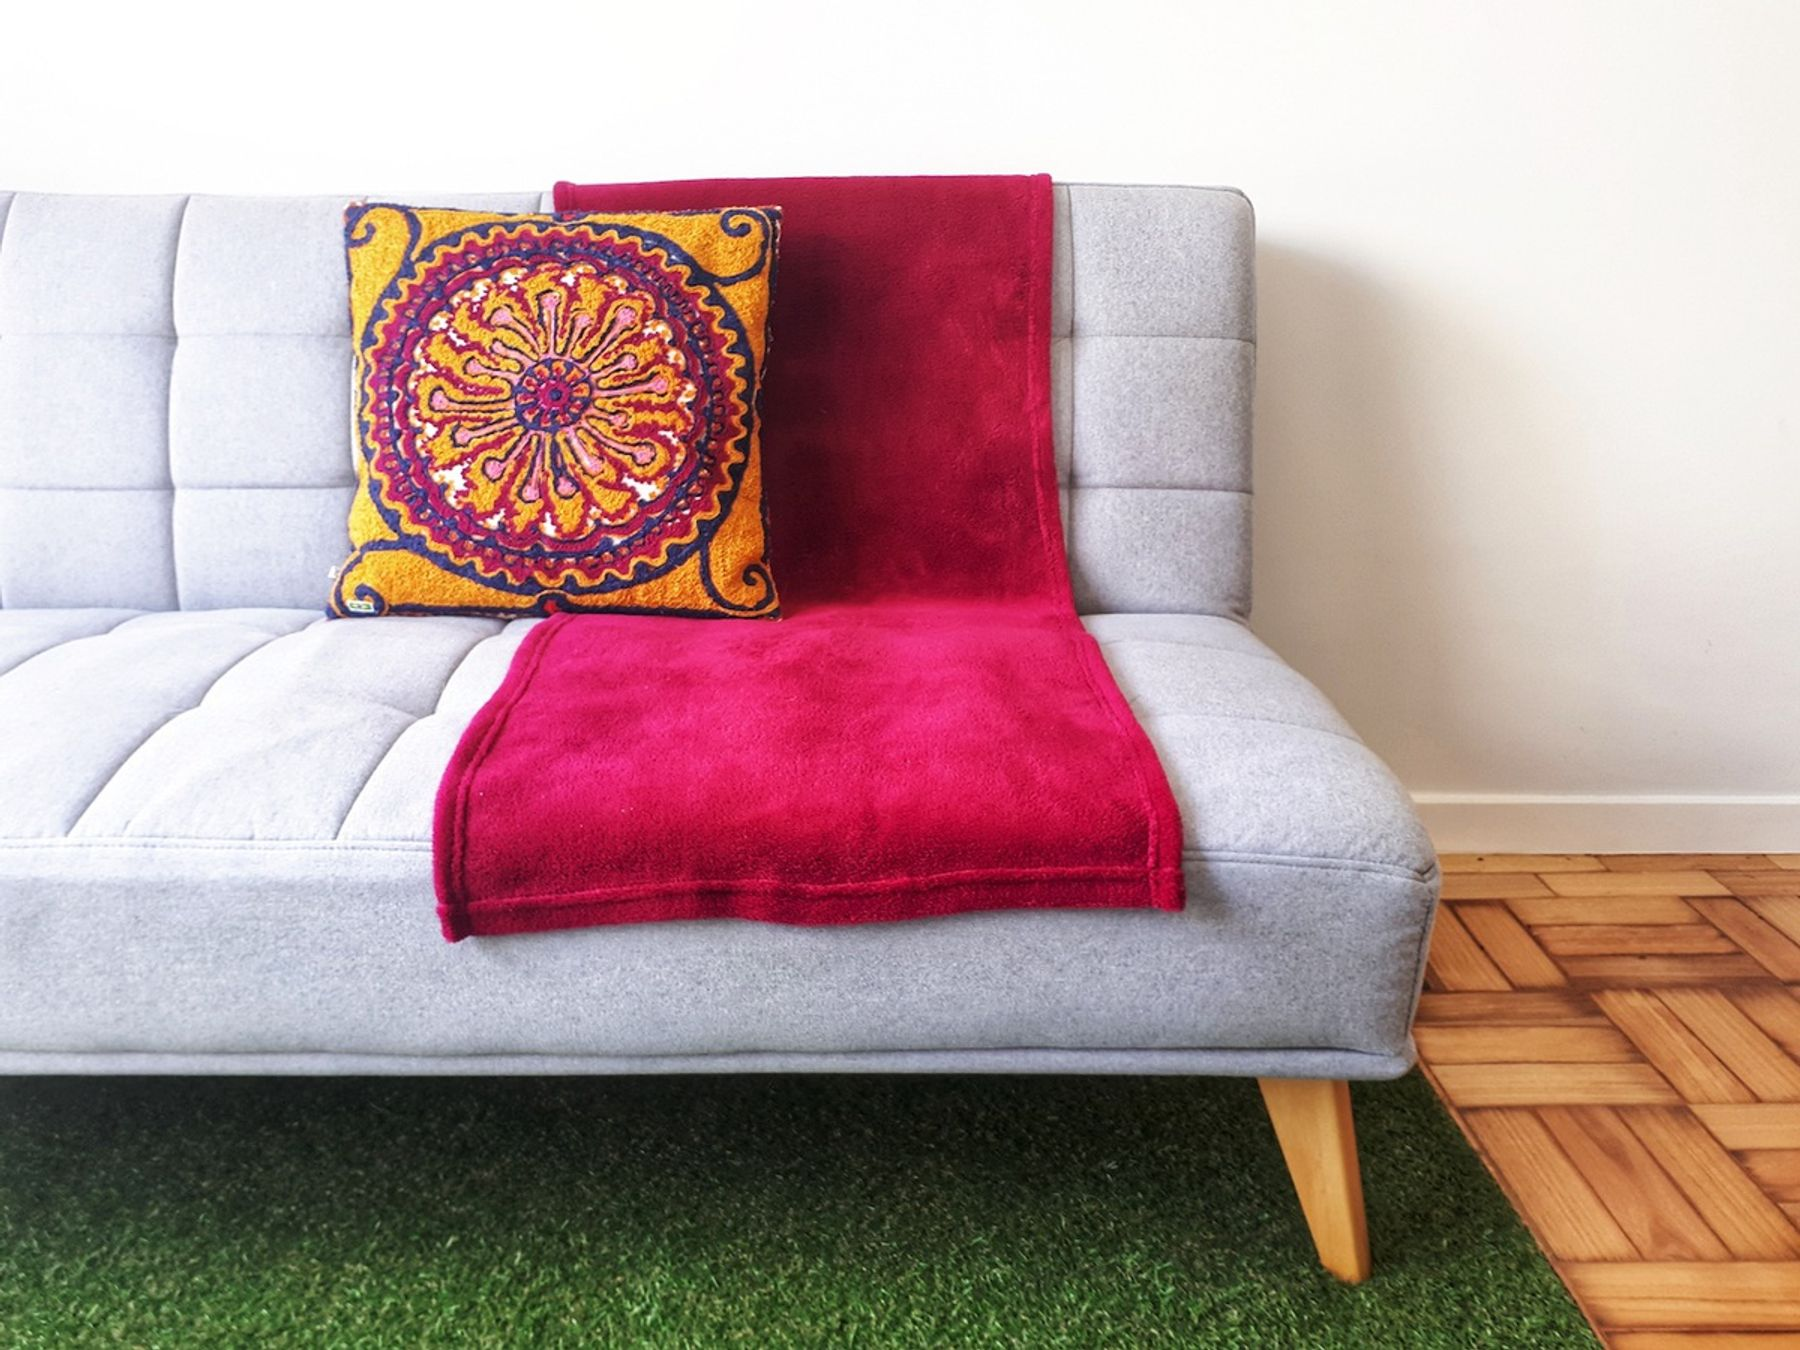 Sofa with a throw blanket and cushions.